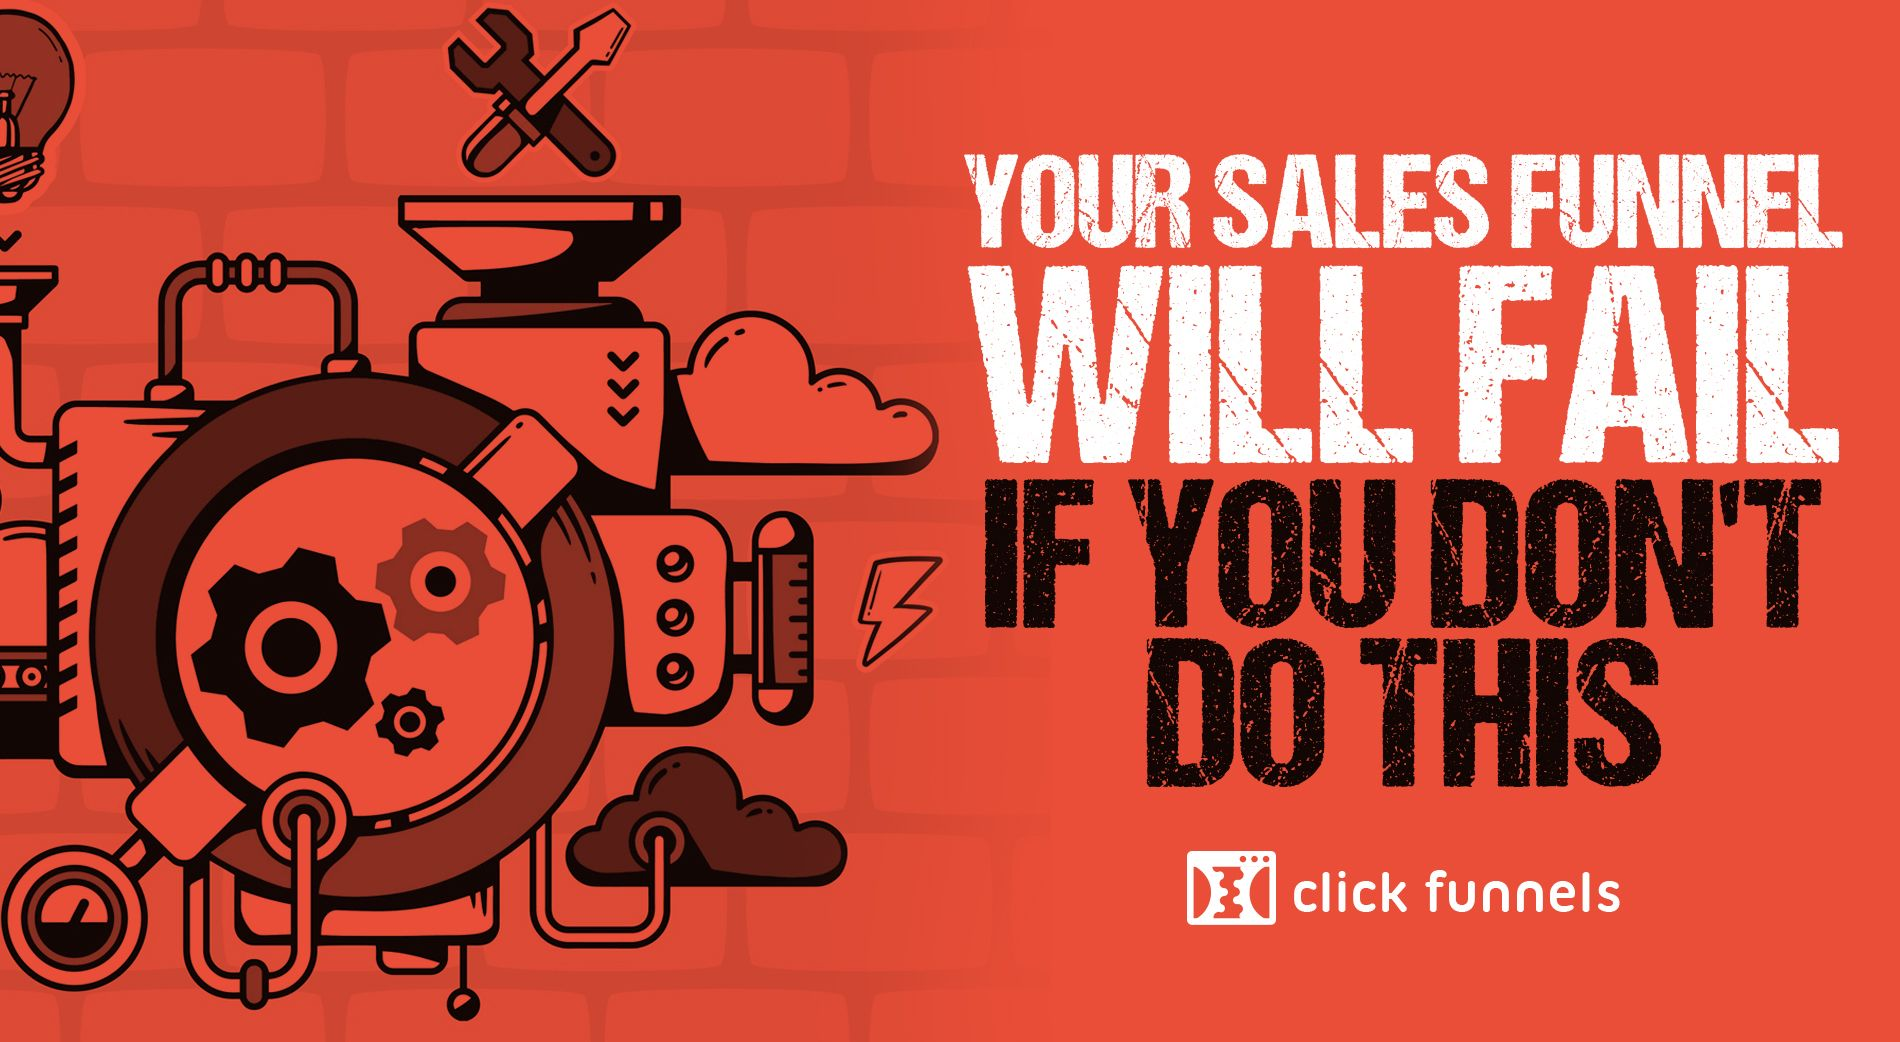 Your Sales Funnel Will Fail If You Don't Do This